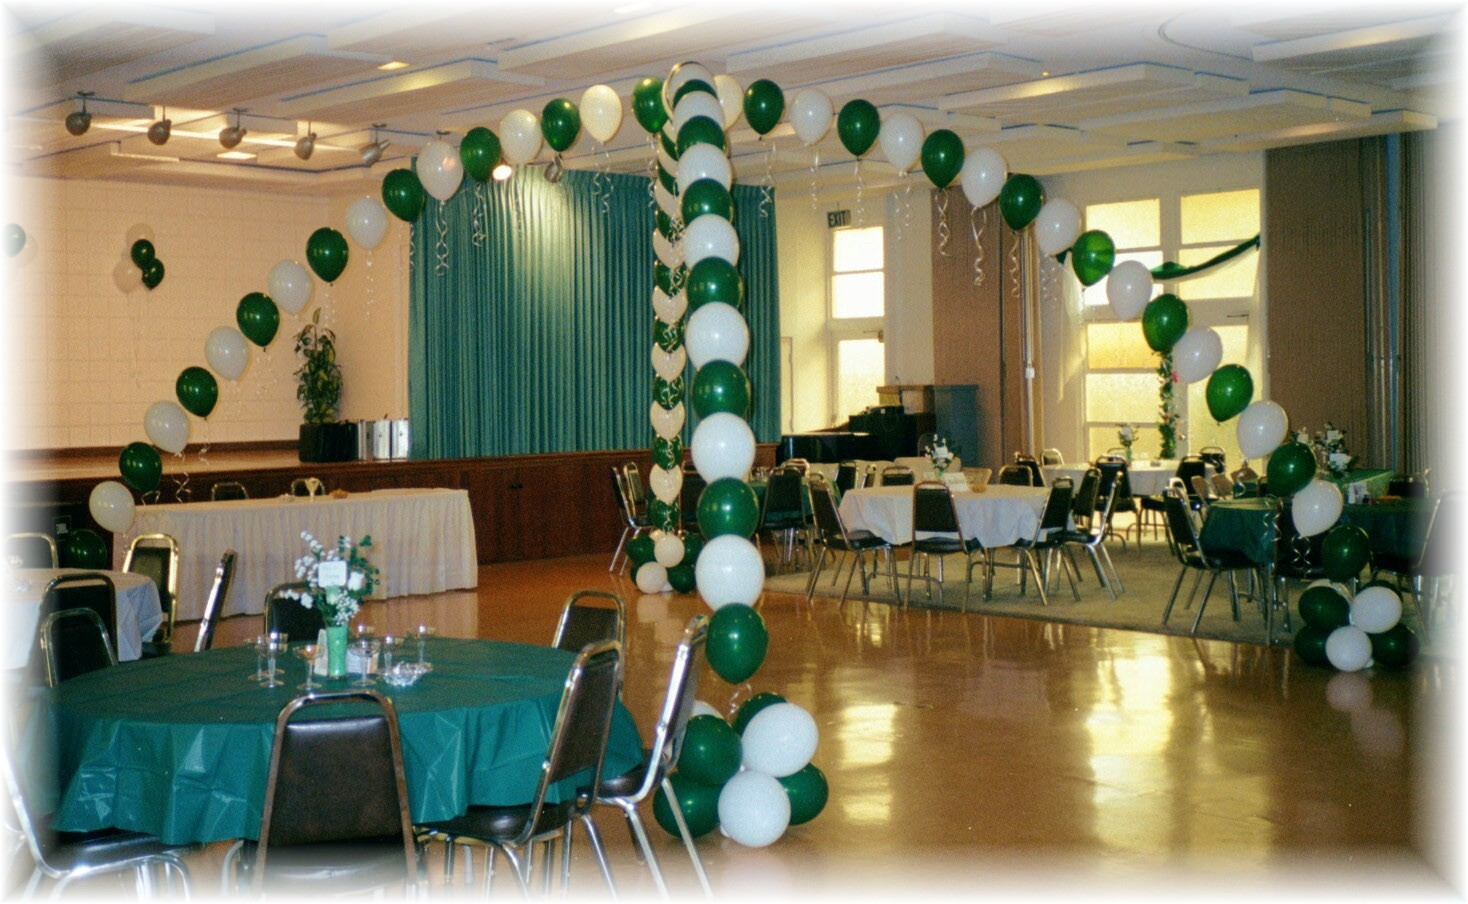 how to decorate with balloons school reunion decorations reunion balloons balloon decorating. Black Bedroom Furniture Sets. Home Design Ideas